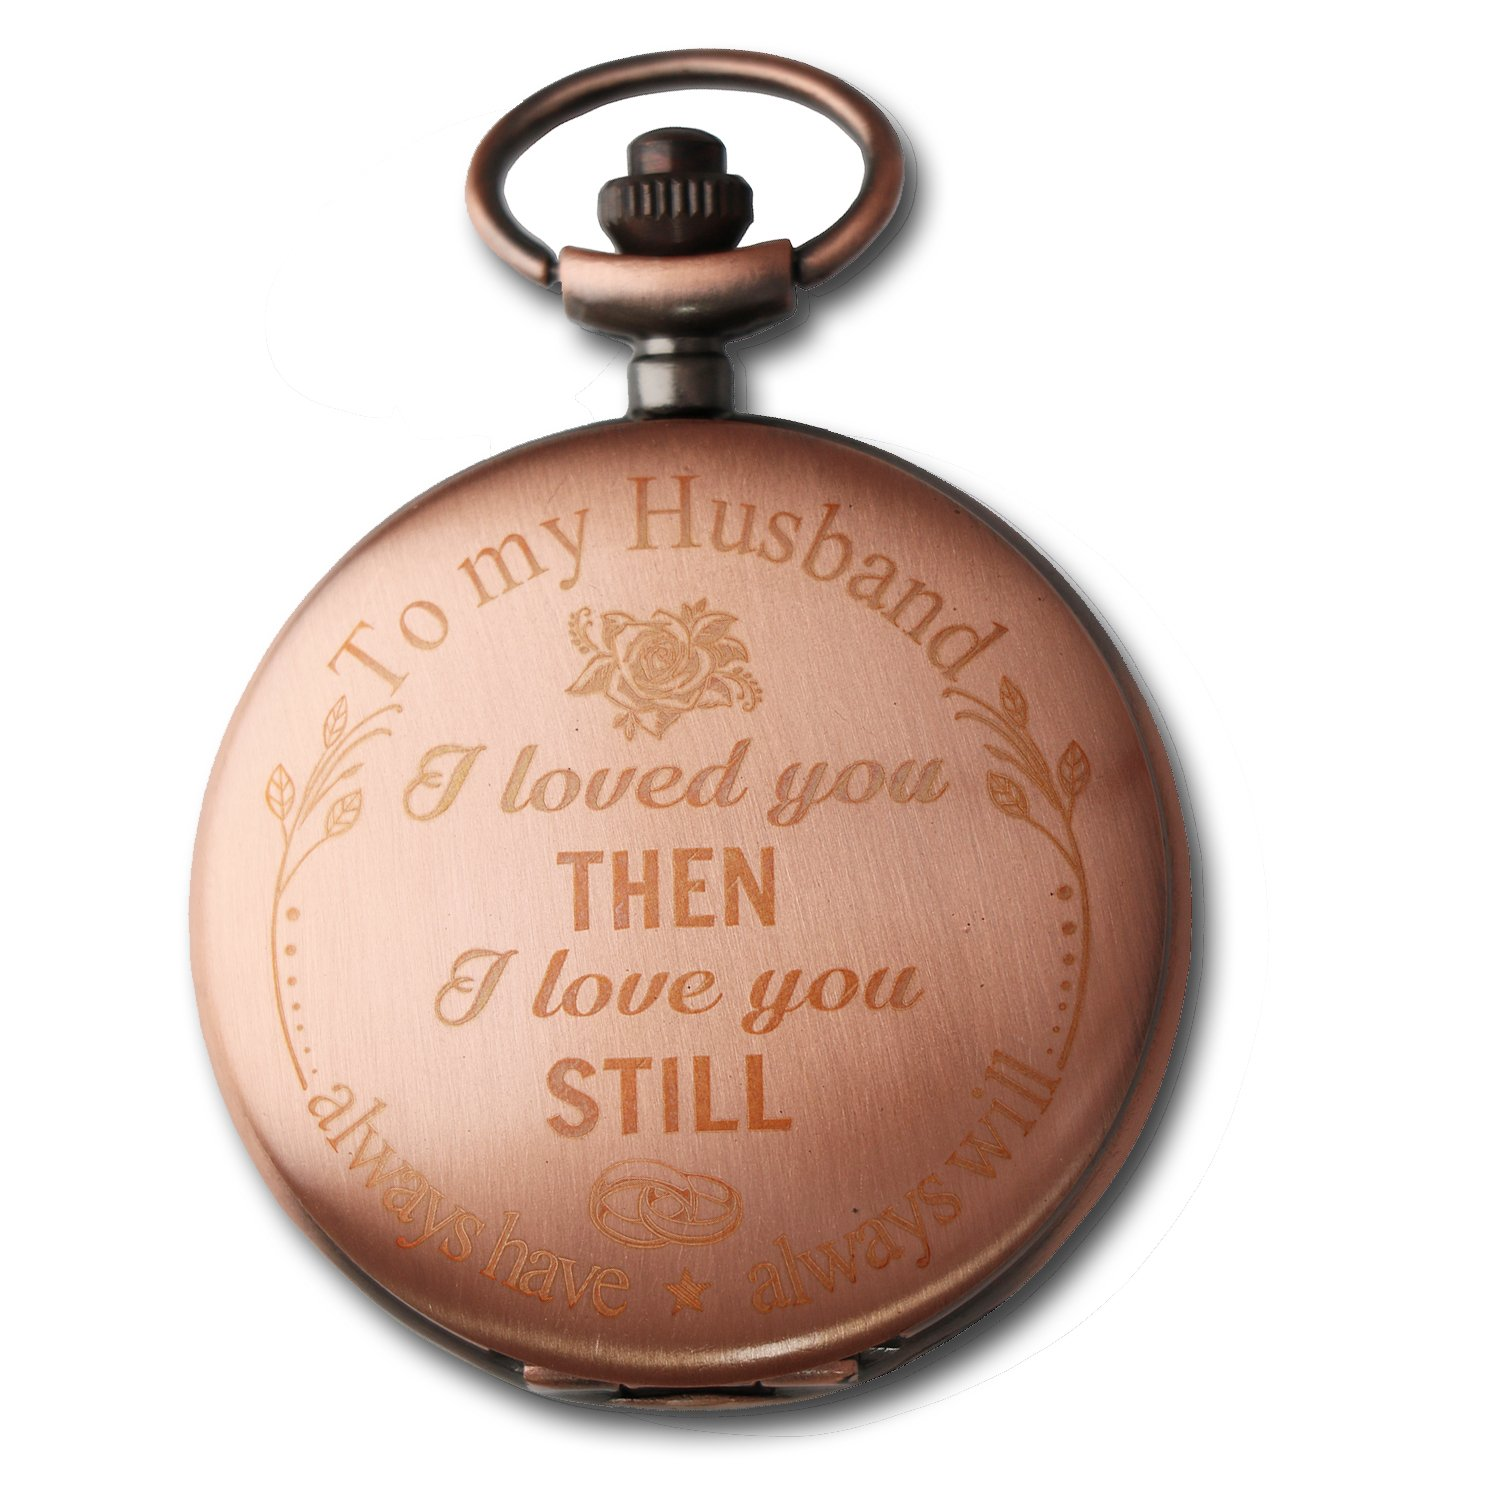 Mainbed Engraved Personalized Pocket Watch, Mens Pocket Watch Pocket Watch To Husband Gift From Wife To Husband by Mainbed